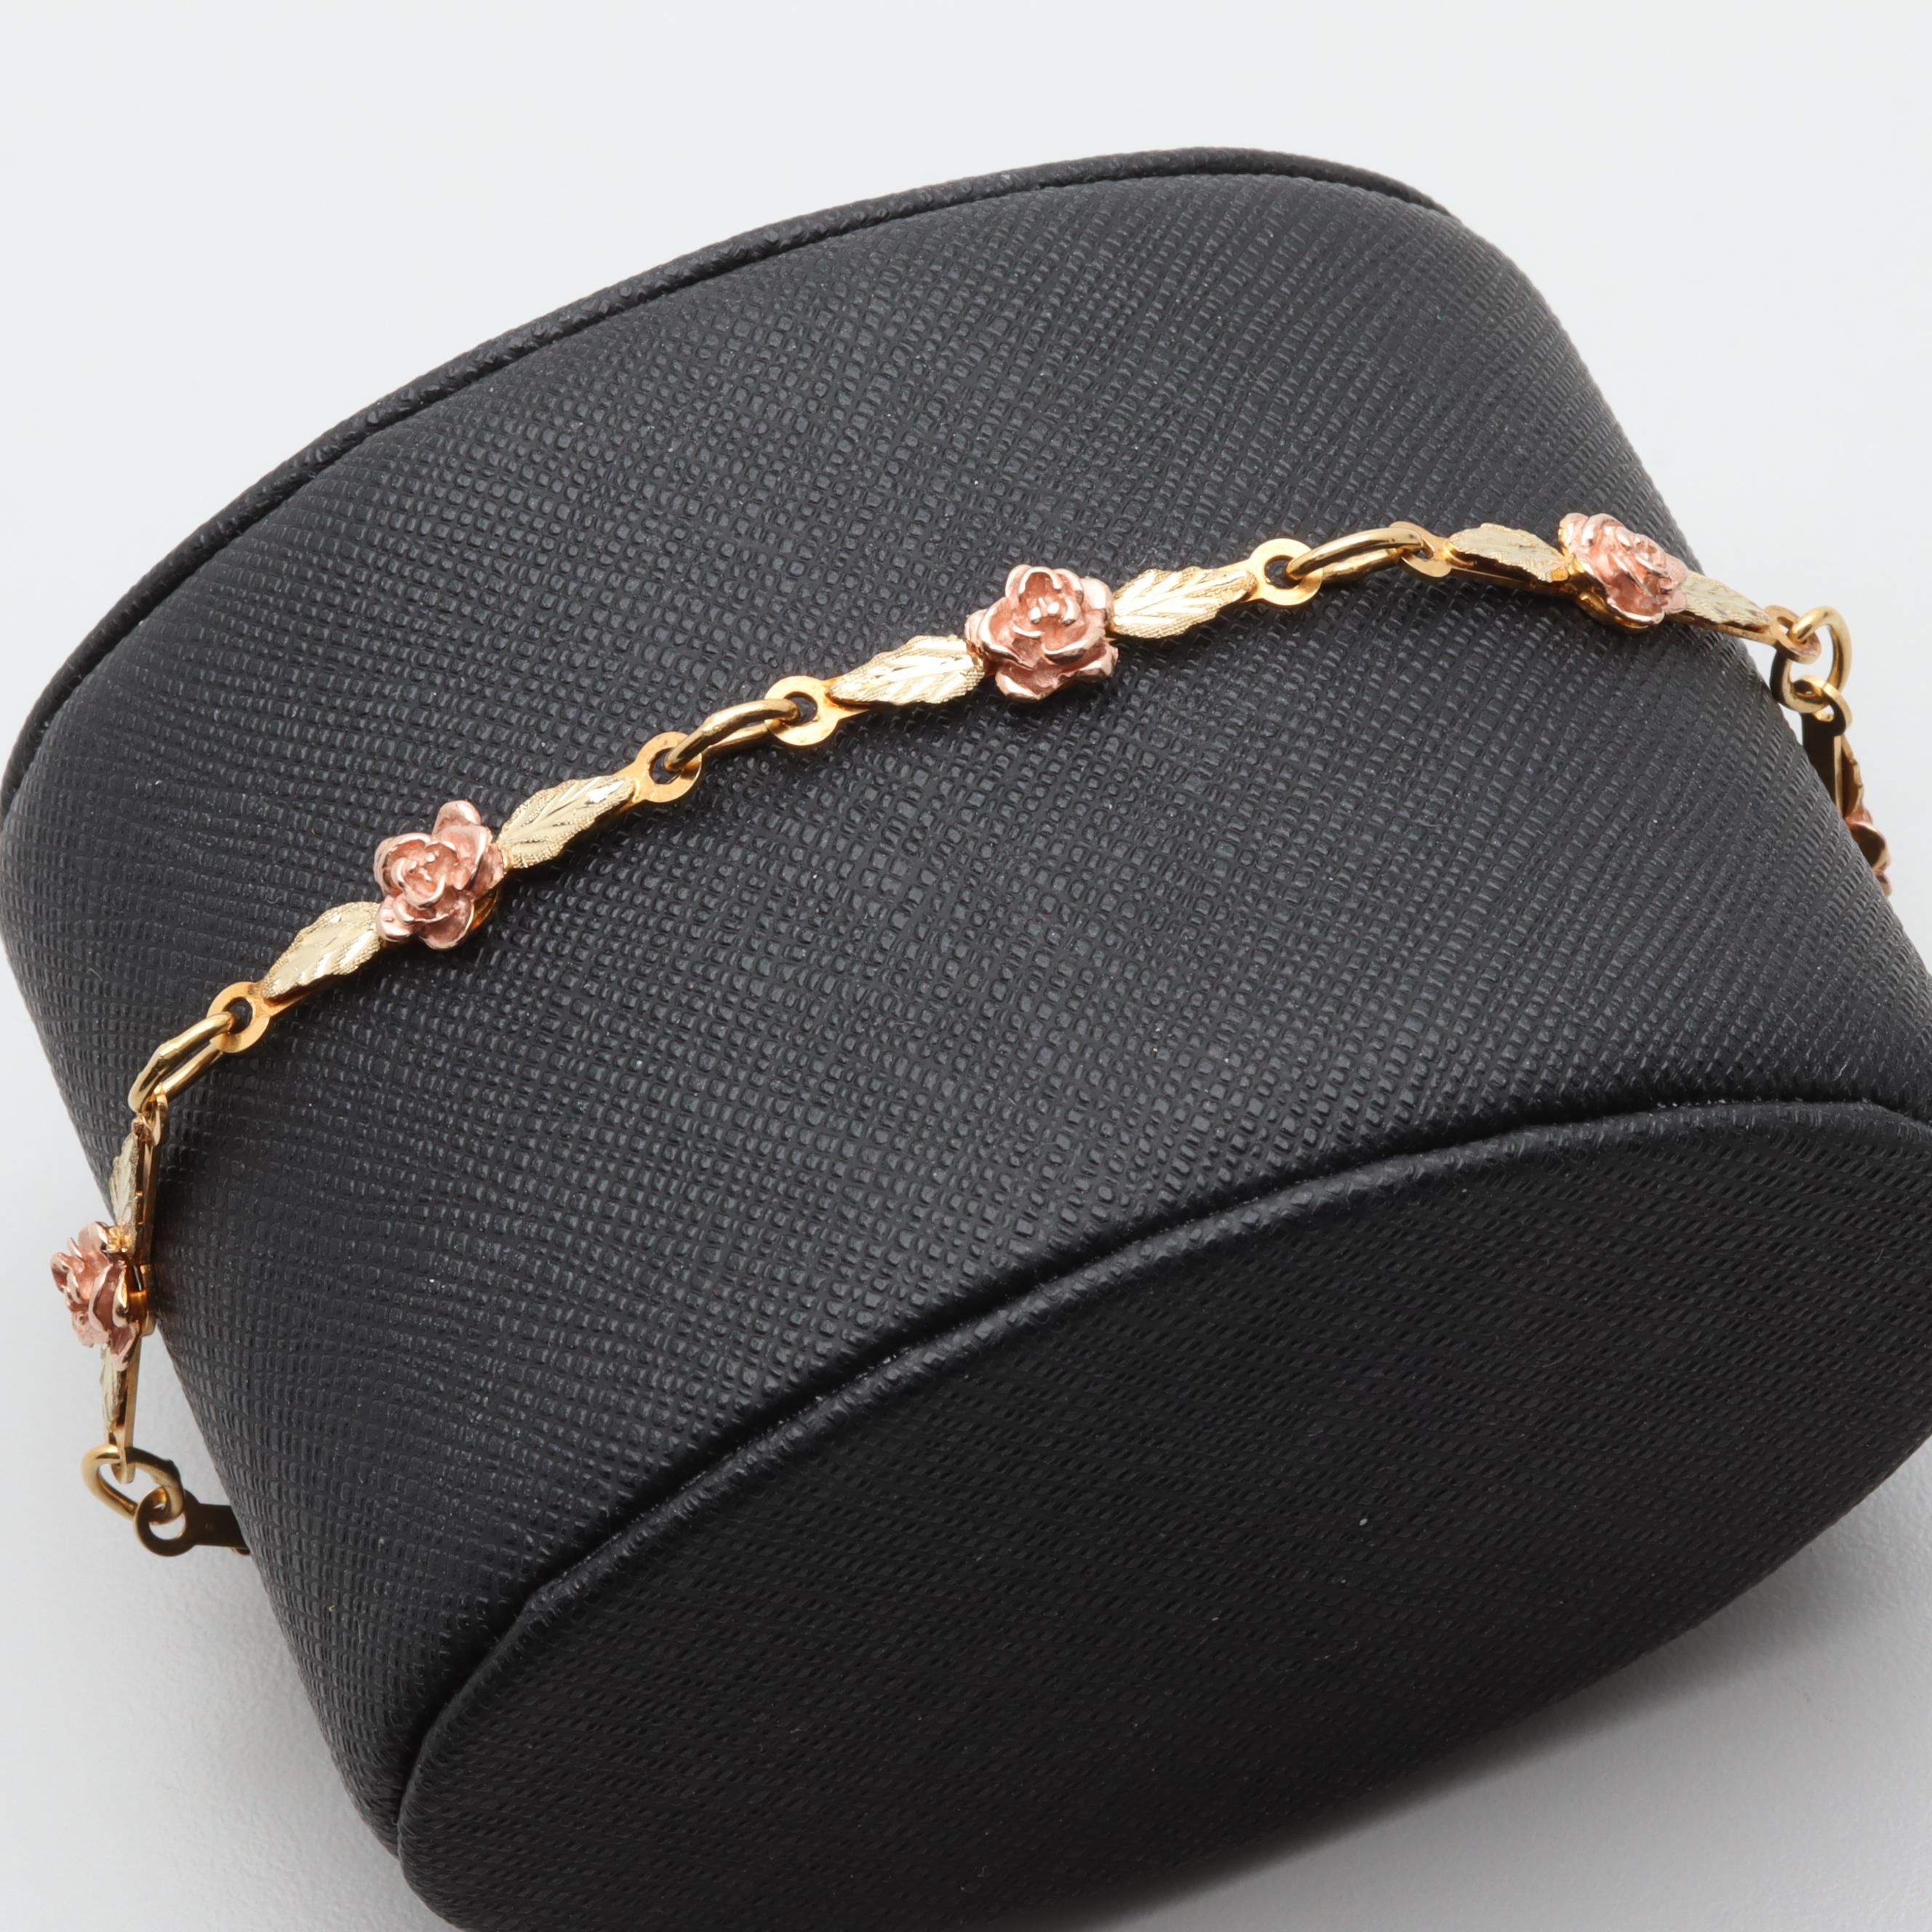 12K Yellow Gold Floral Motif Bracelet With Rose Gold Accents